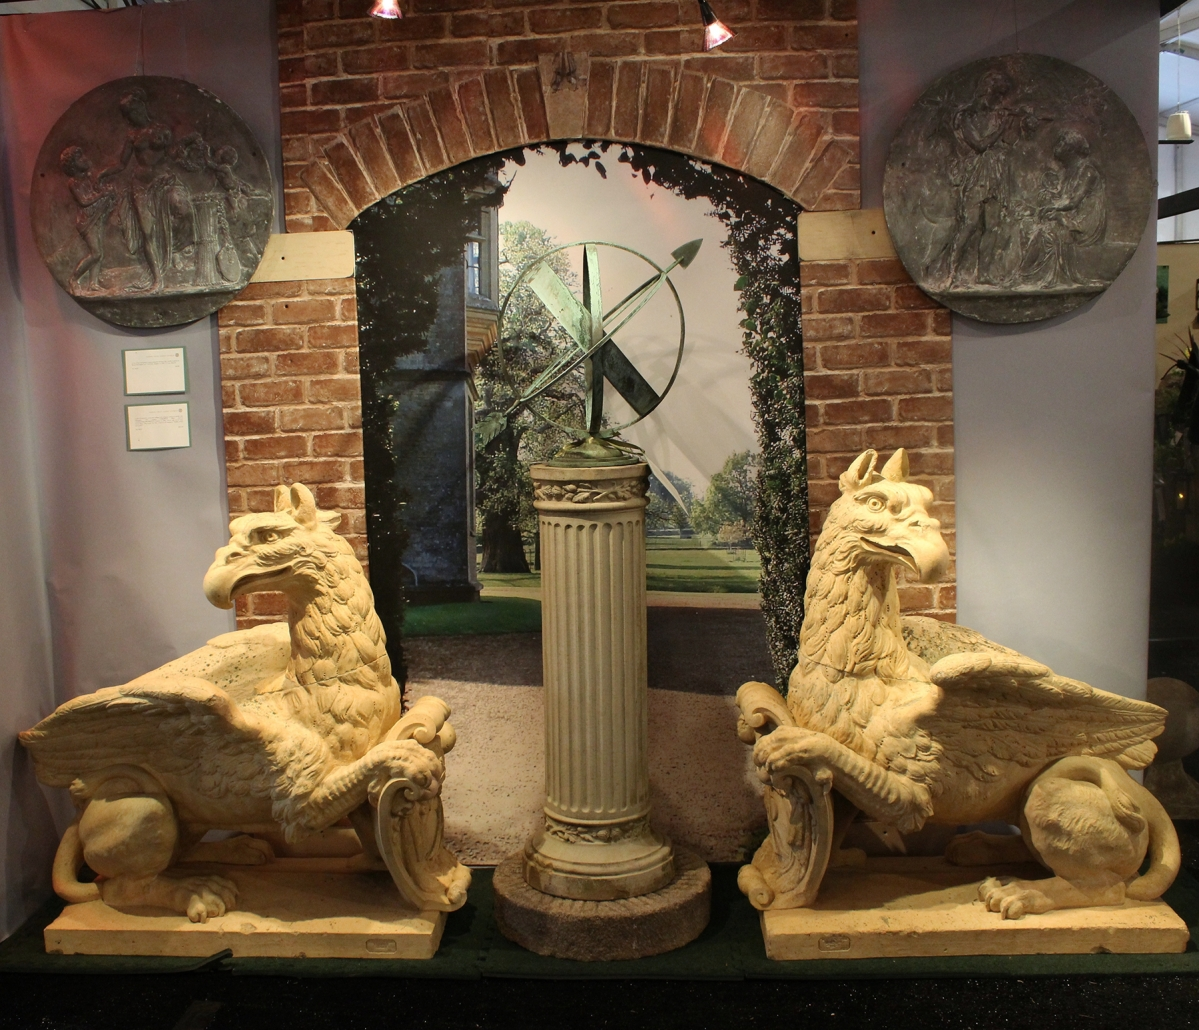 An impressive pair of French terracotta griffins, circa 1860, 44 by 44 inches, guarded an outside wall at Barbara Israel Garden Antiques.